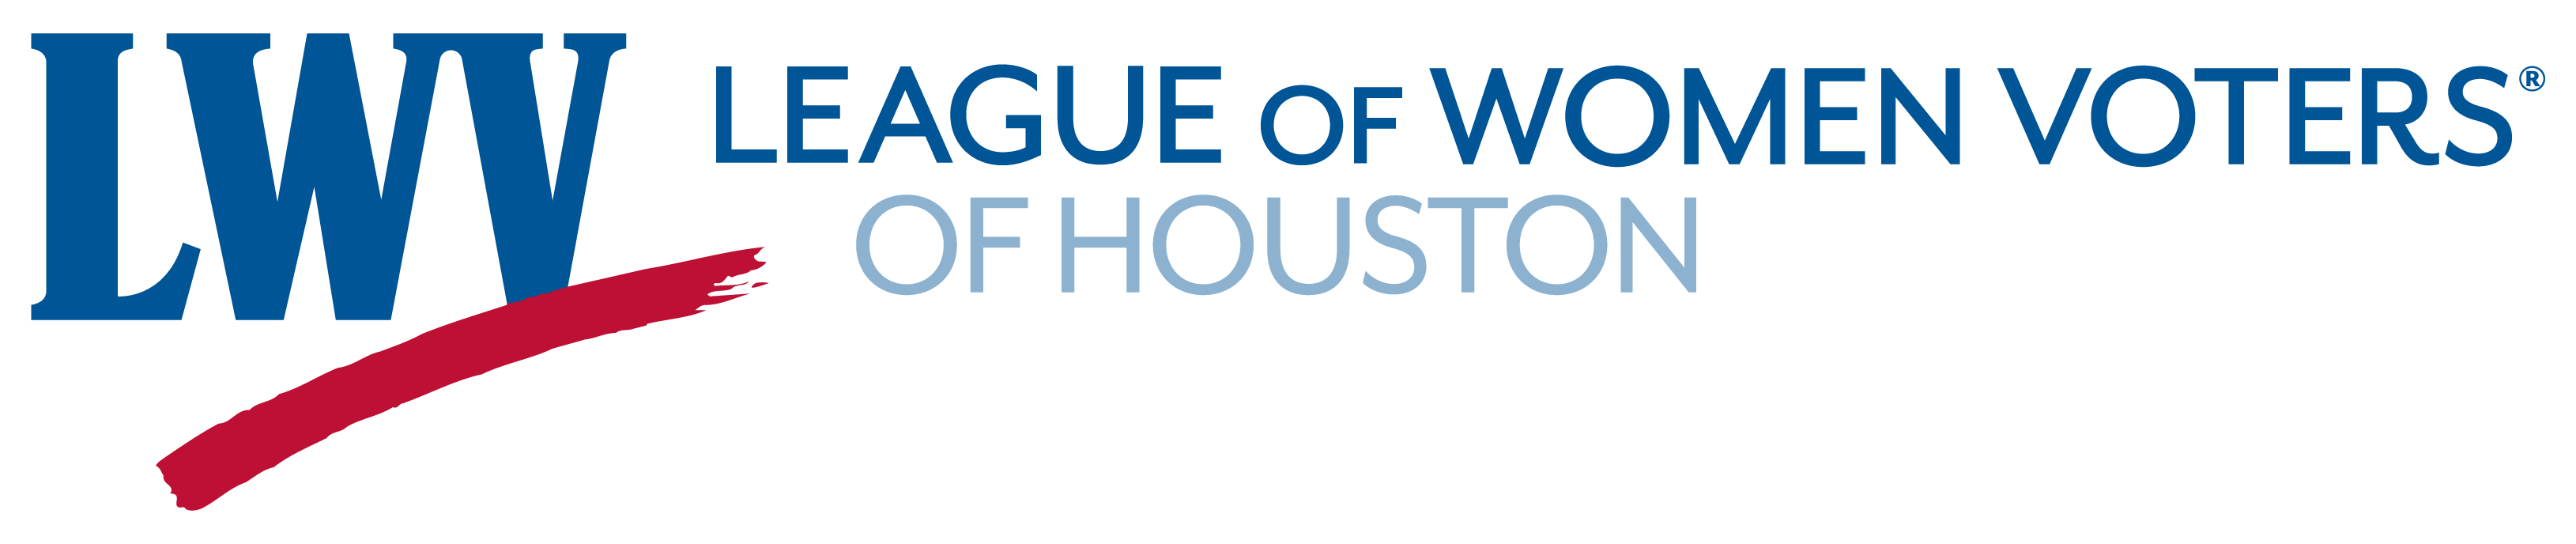 League of Women Voters of Houston logo